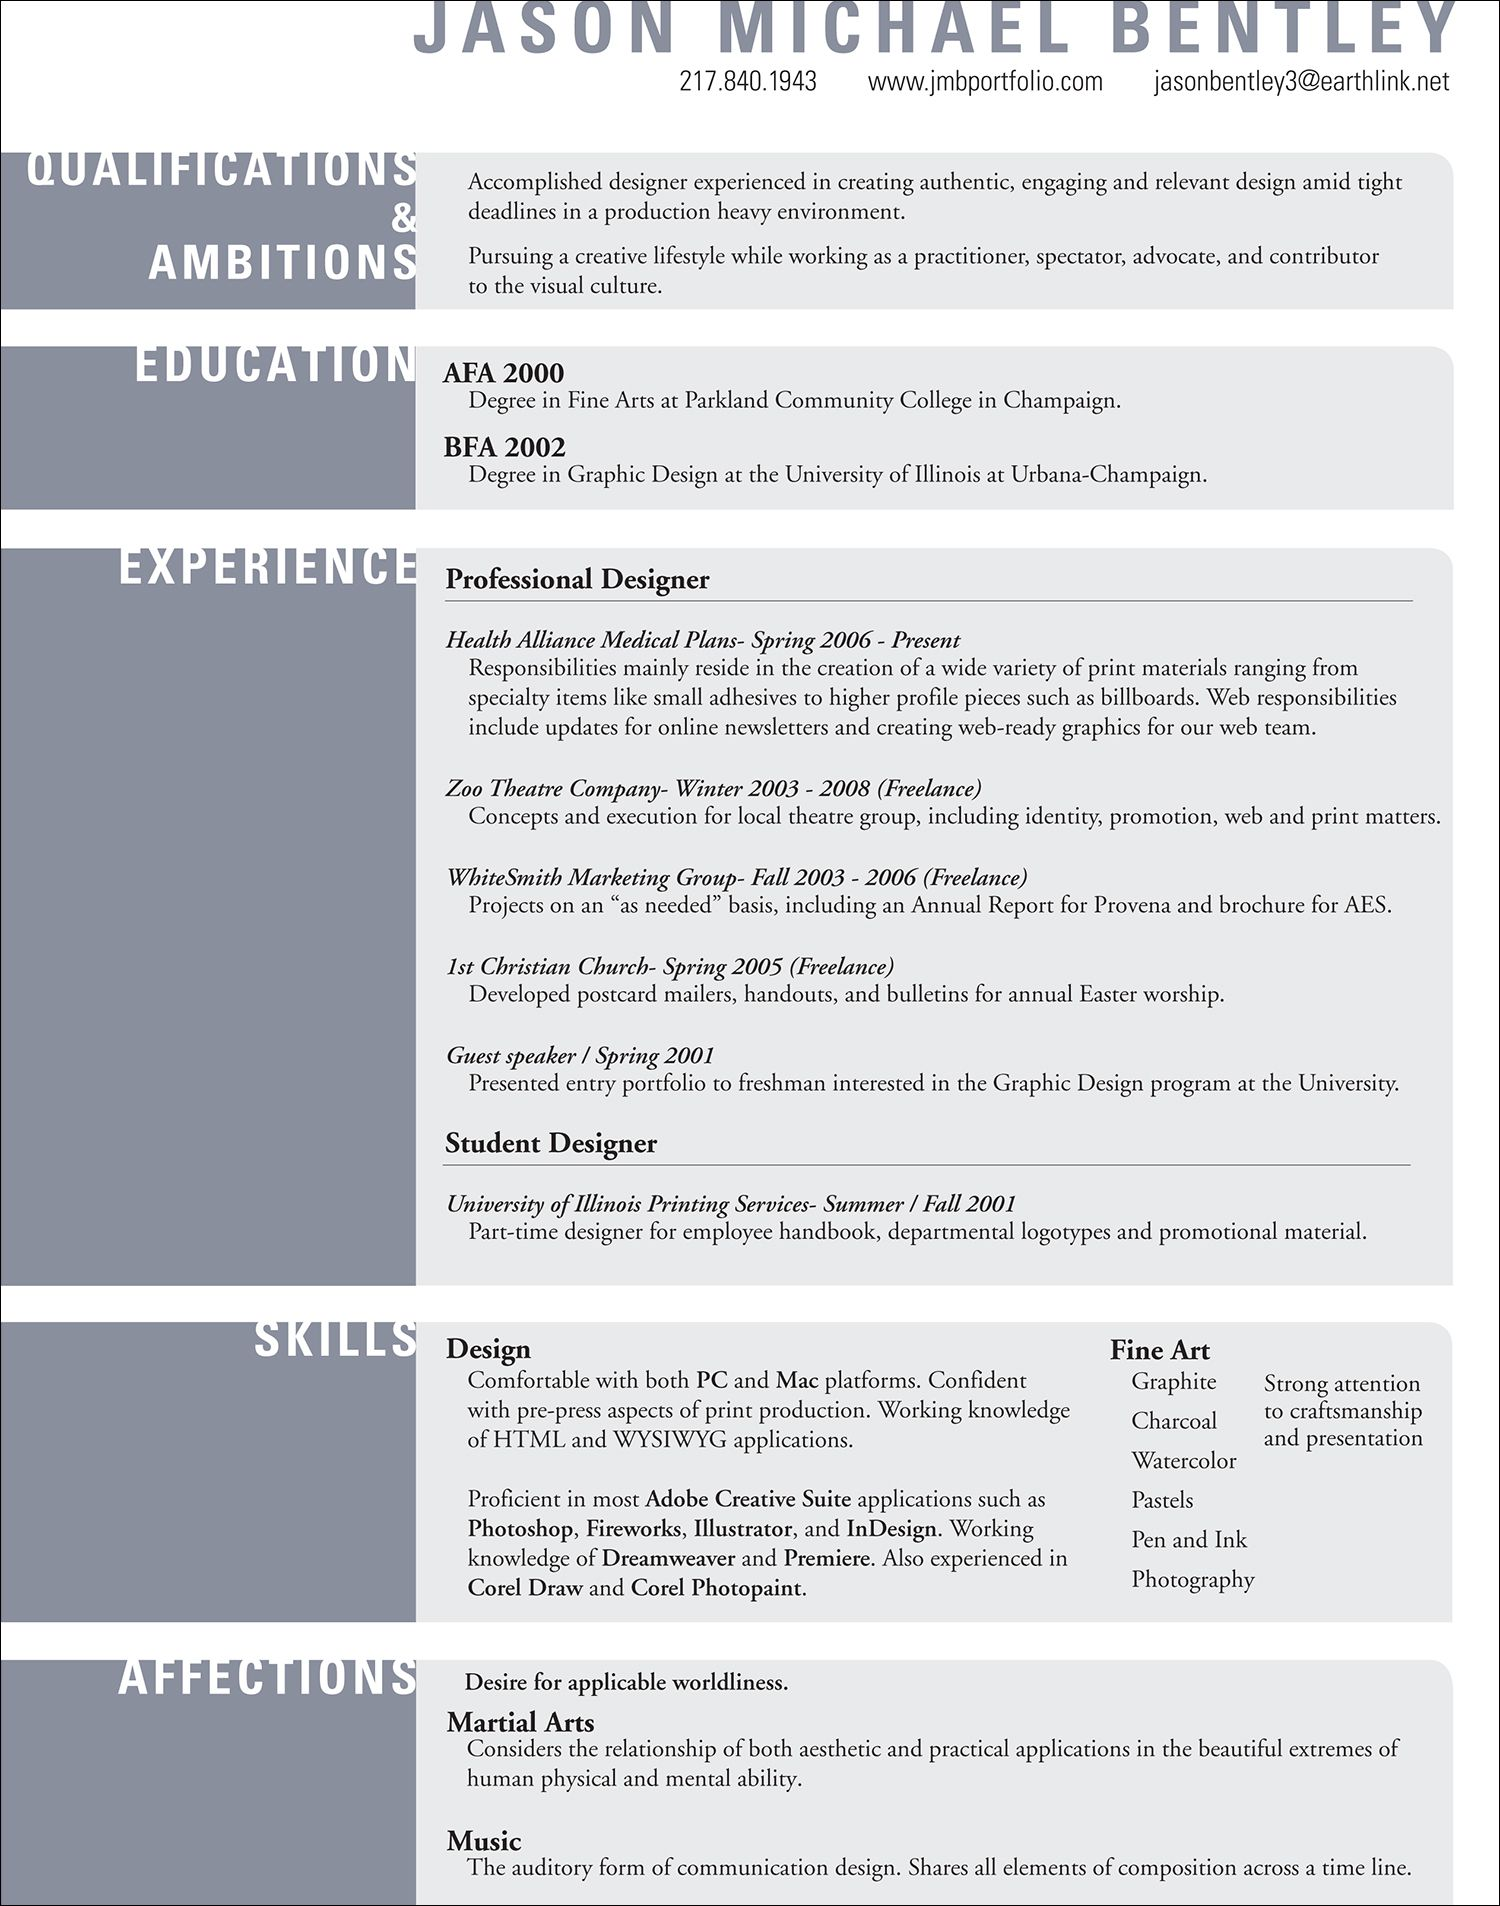 Graphic Design Resume | Resume | jmbportfolio.com | The grind ...